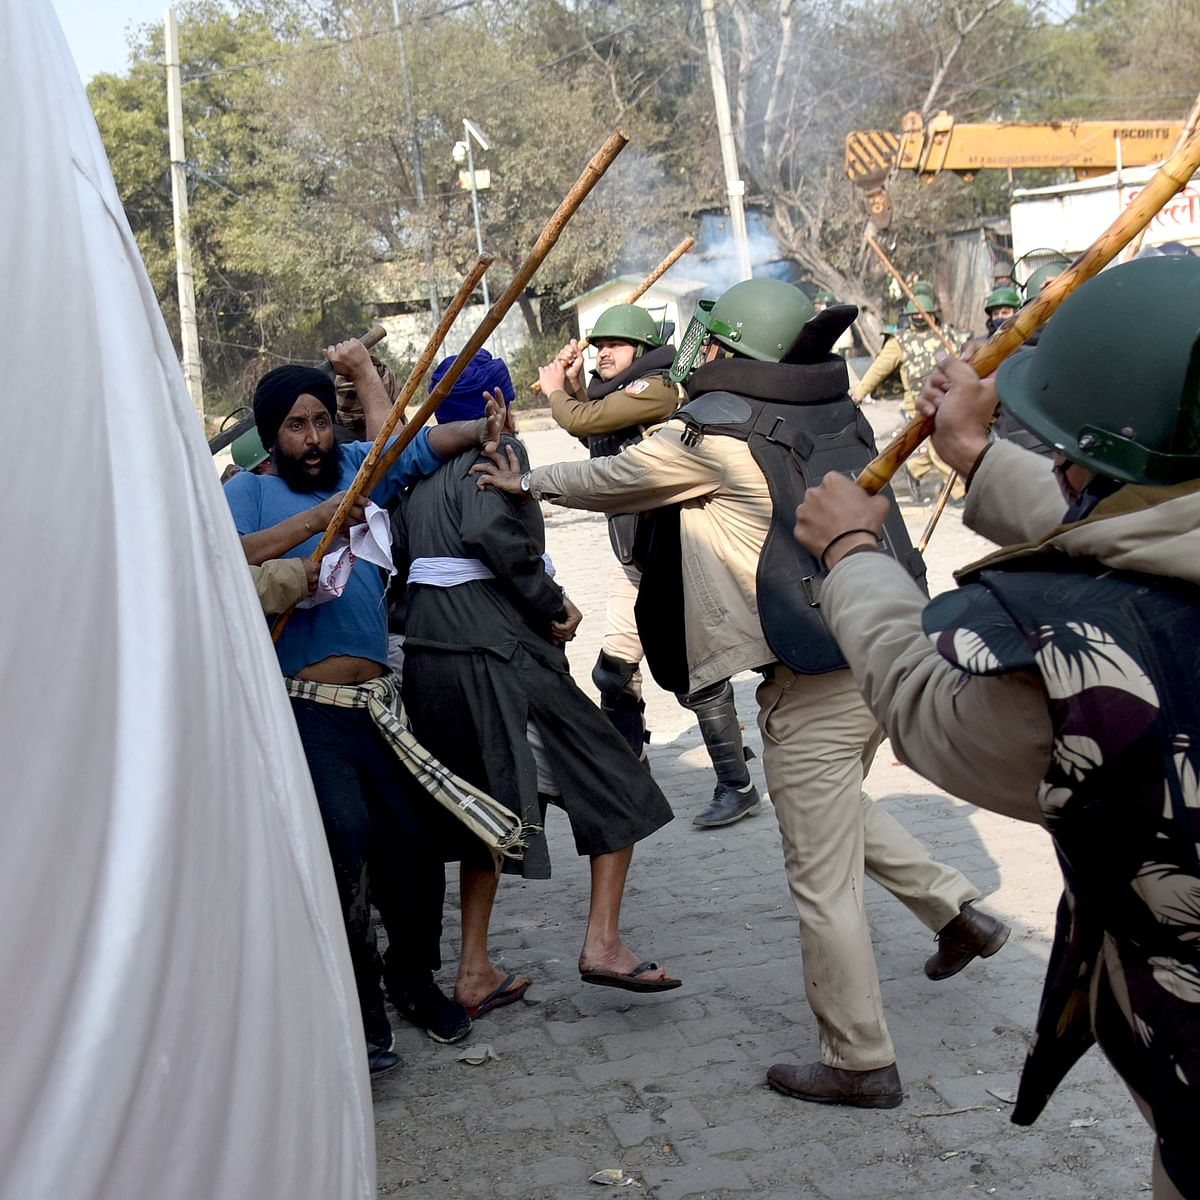 Singhu border clash: Police arrest 44, including man who attacked officer with sword